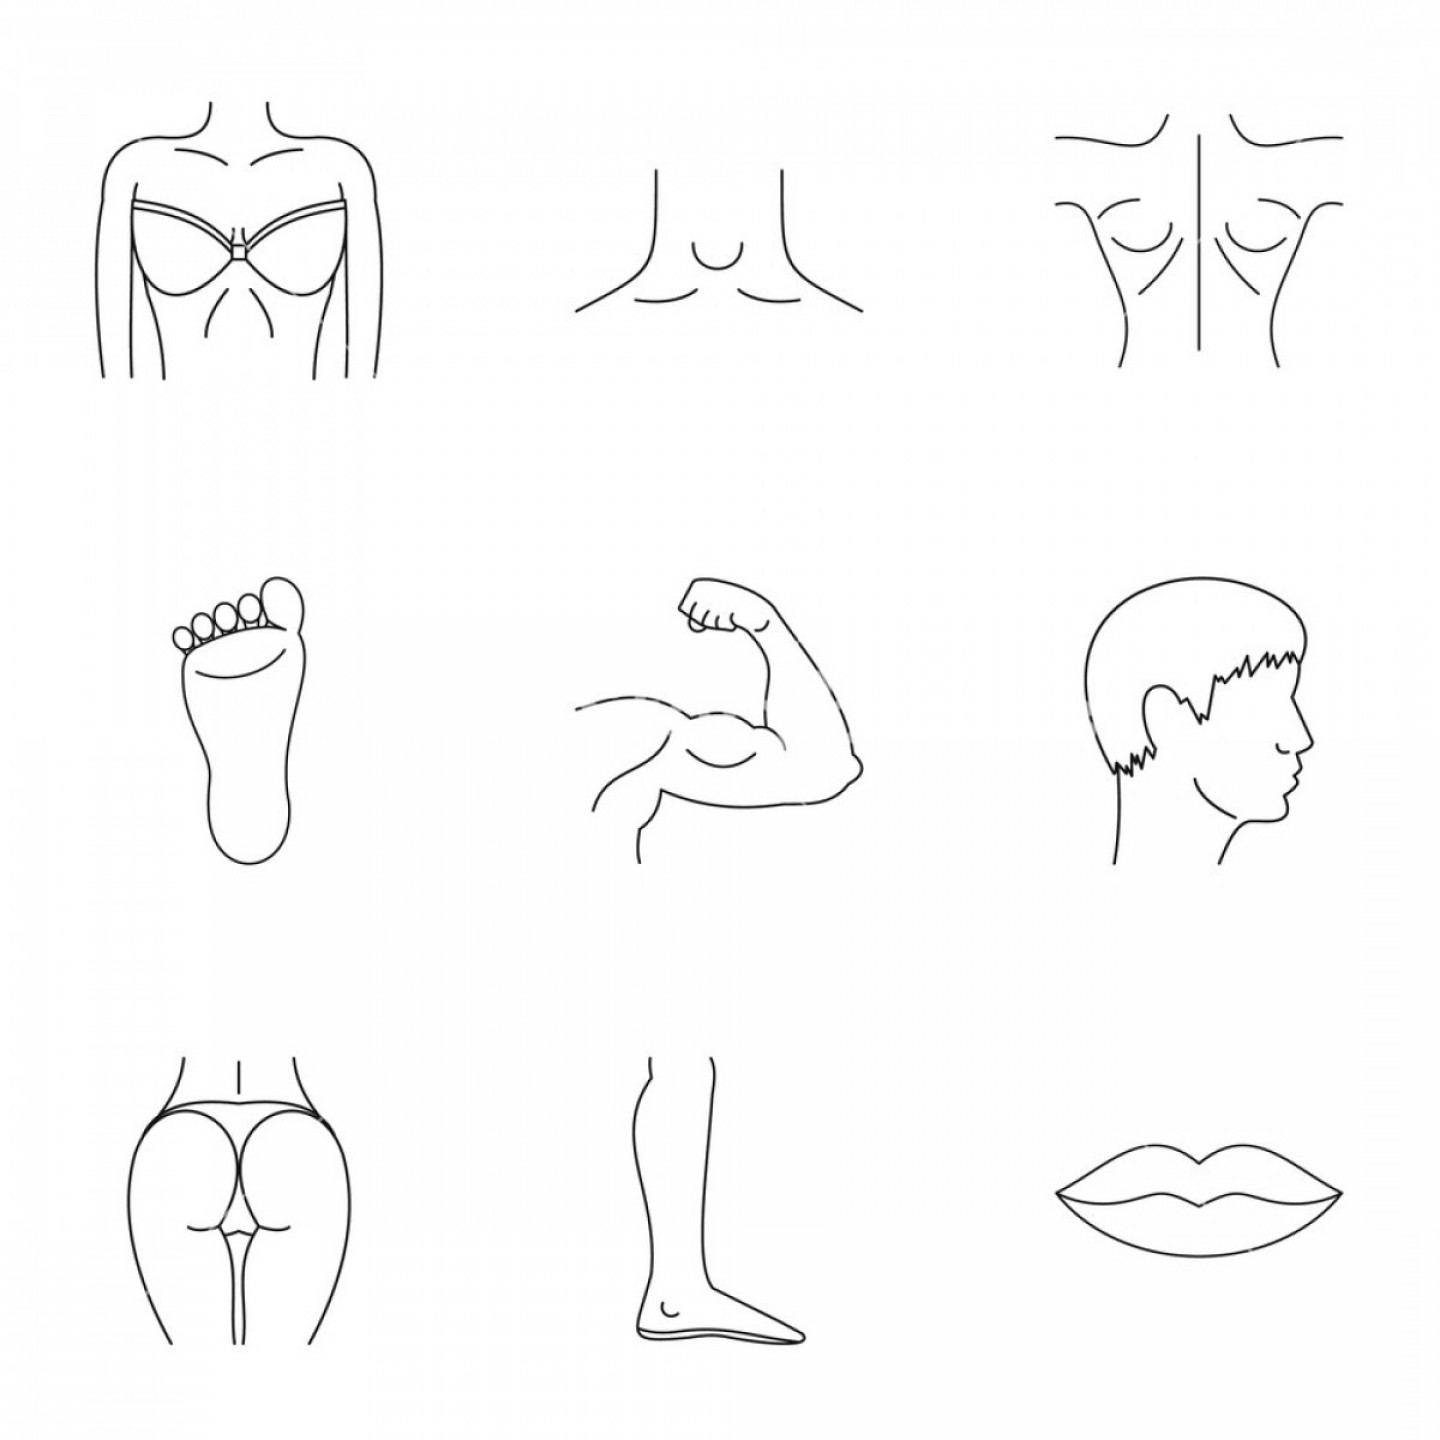 Human Body Outline Vector: Human Body Icons Set Outline Illustration Of Human Body Vector Icons For Web Rlaiqrpqjhuyocey